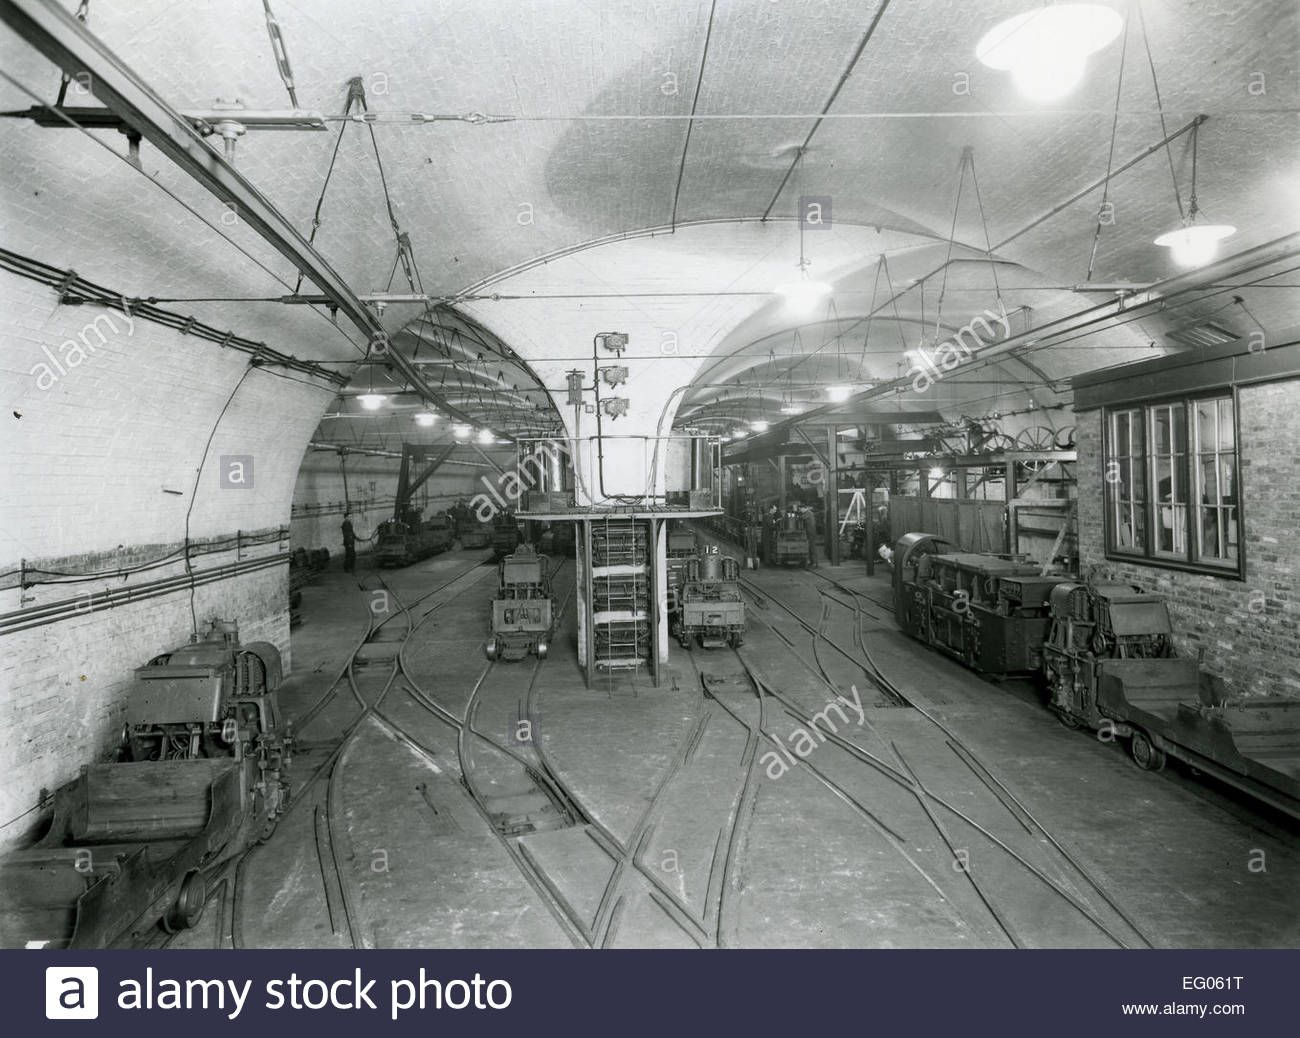 Image result for railway post office worker london